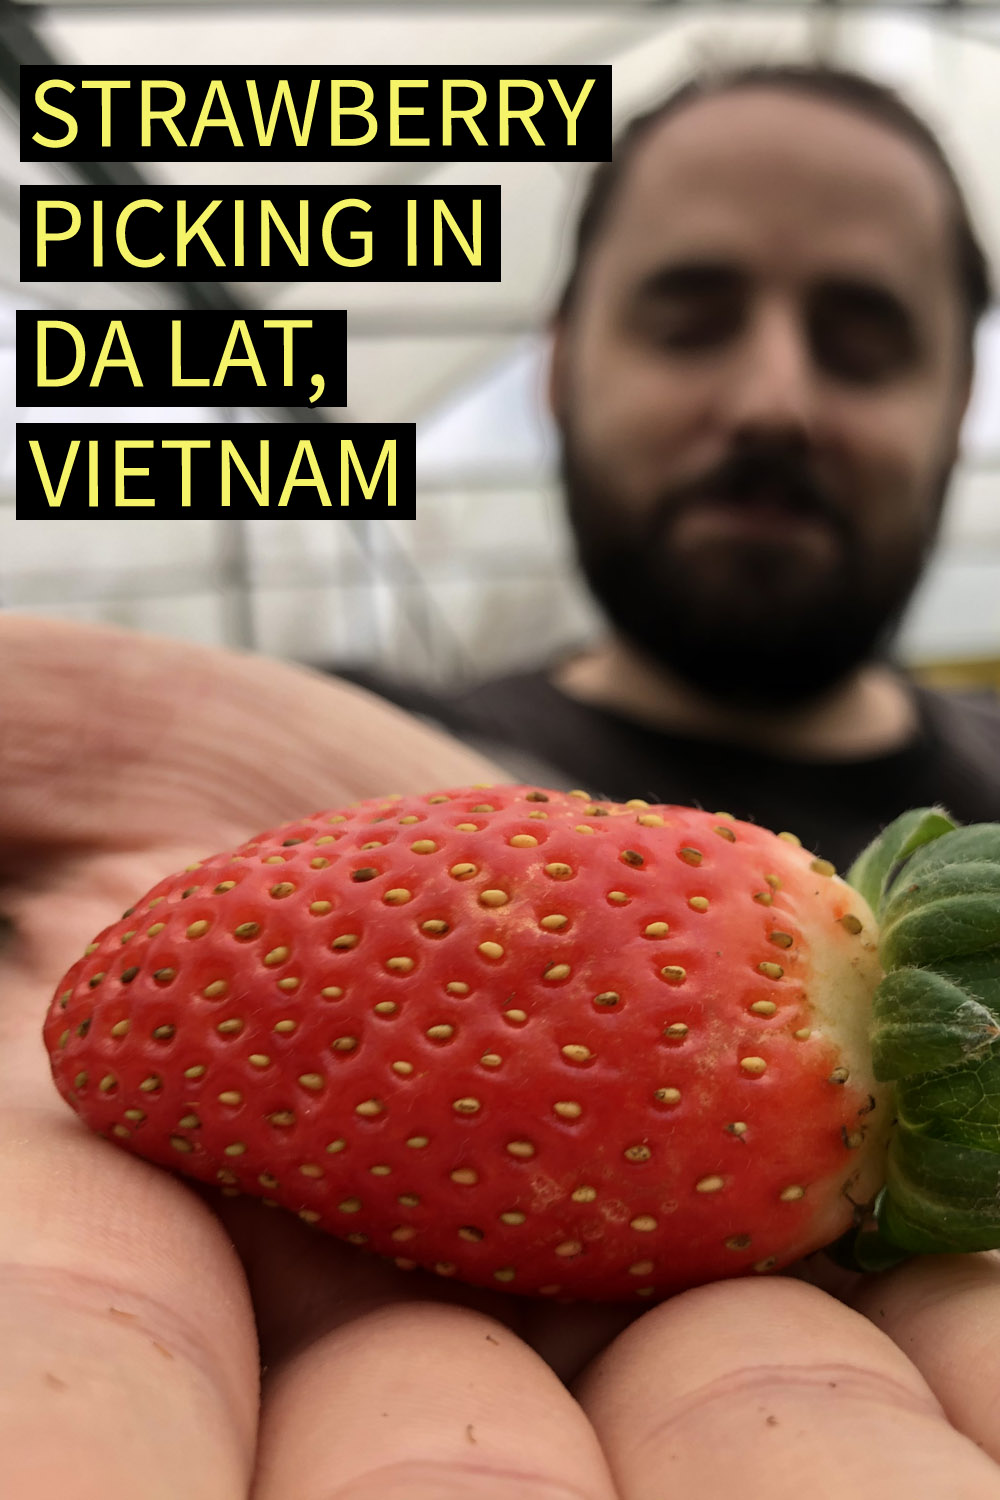 "Image contains a photo of a man holding a bright red strawberry in his right hand. The strawberry is clearly visible in the foreground while the man is out of focus in the background. In the top left of the image, there is yellow text that says ""Strawberry Picking in Da Lat, Vietnam""."